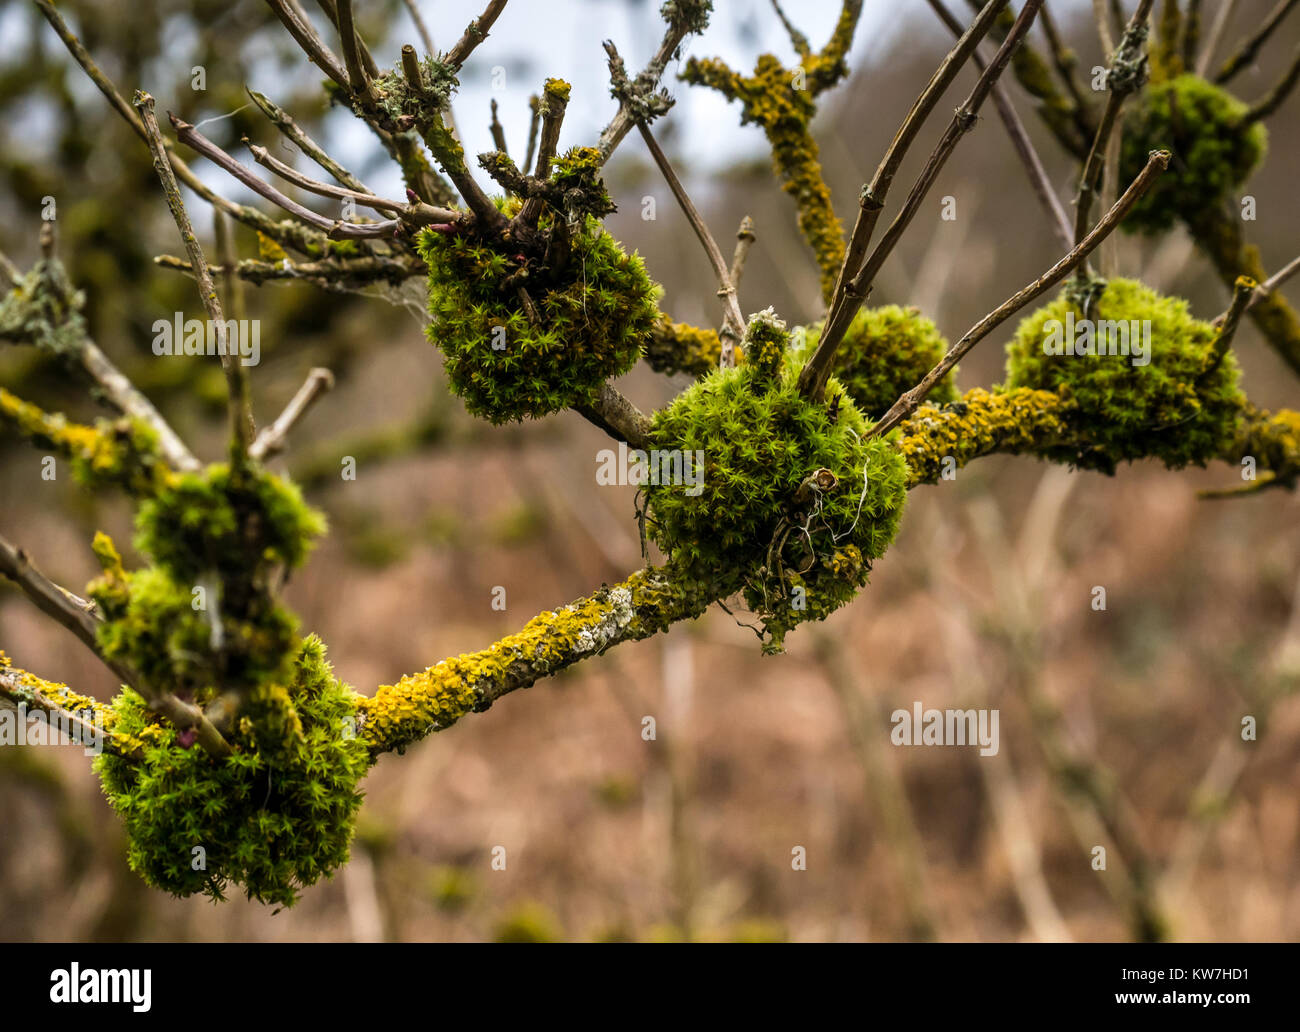 close-up-of-mossy-lichen-covered-tree-br